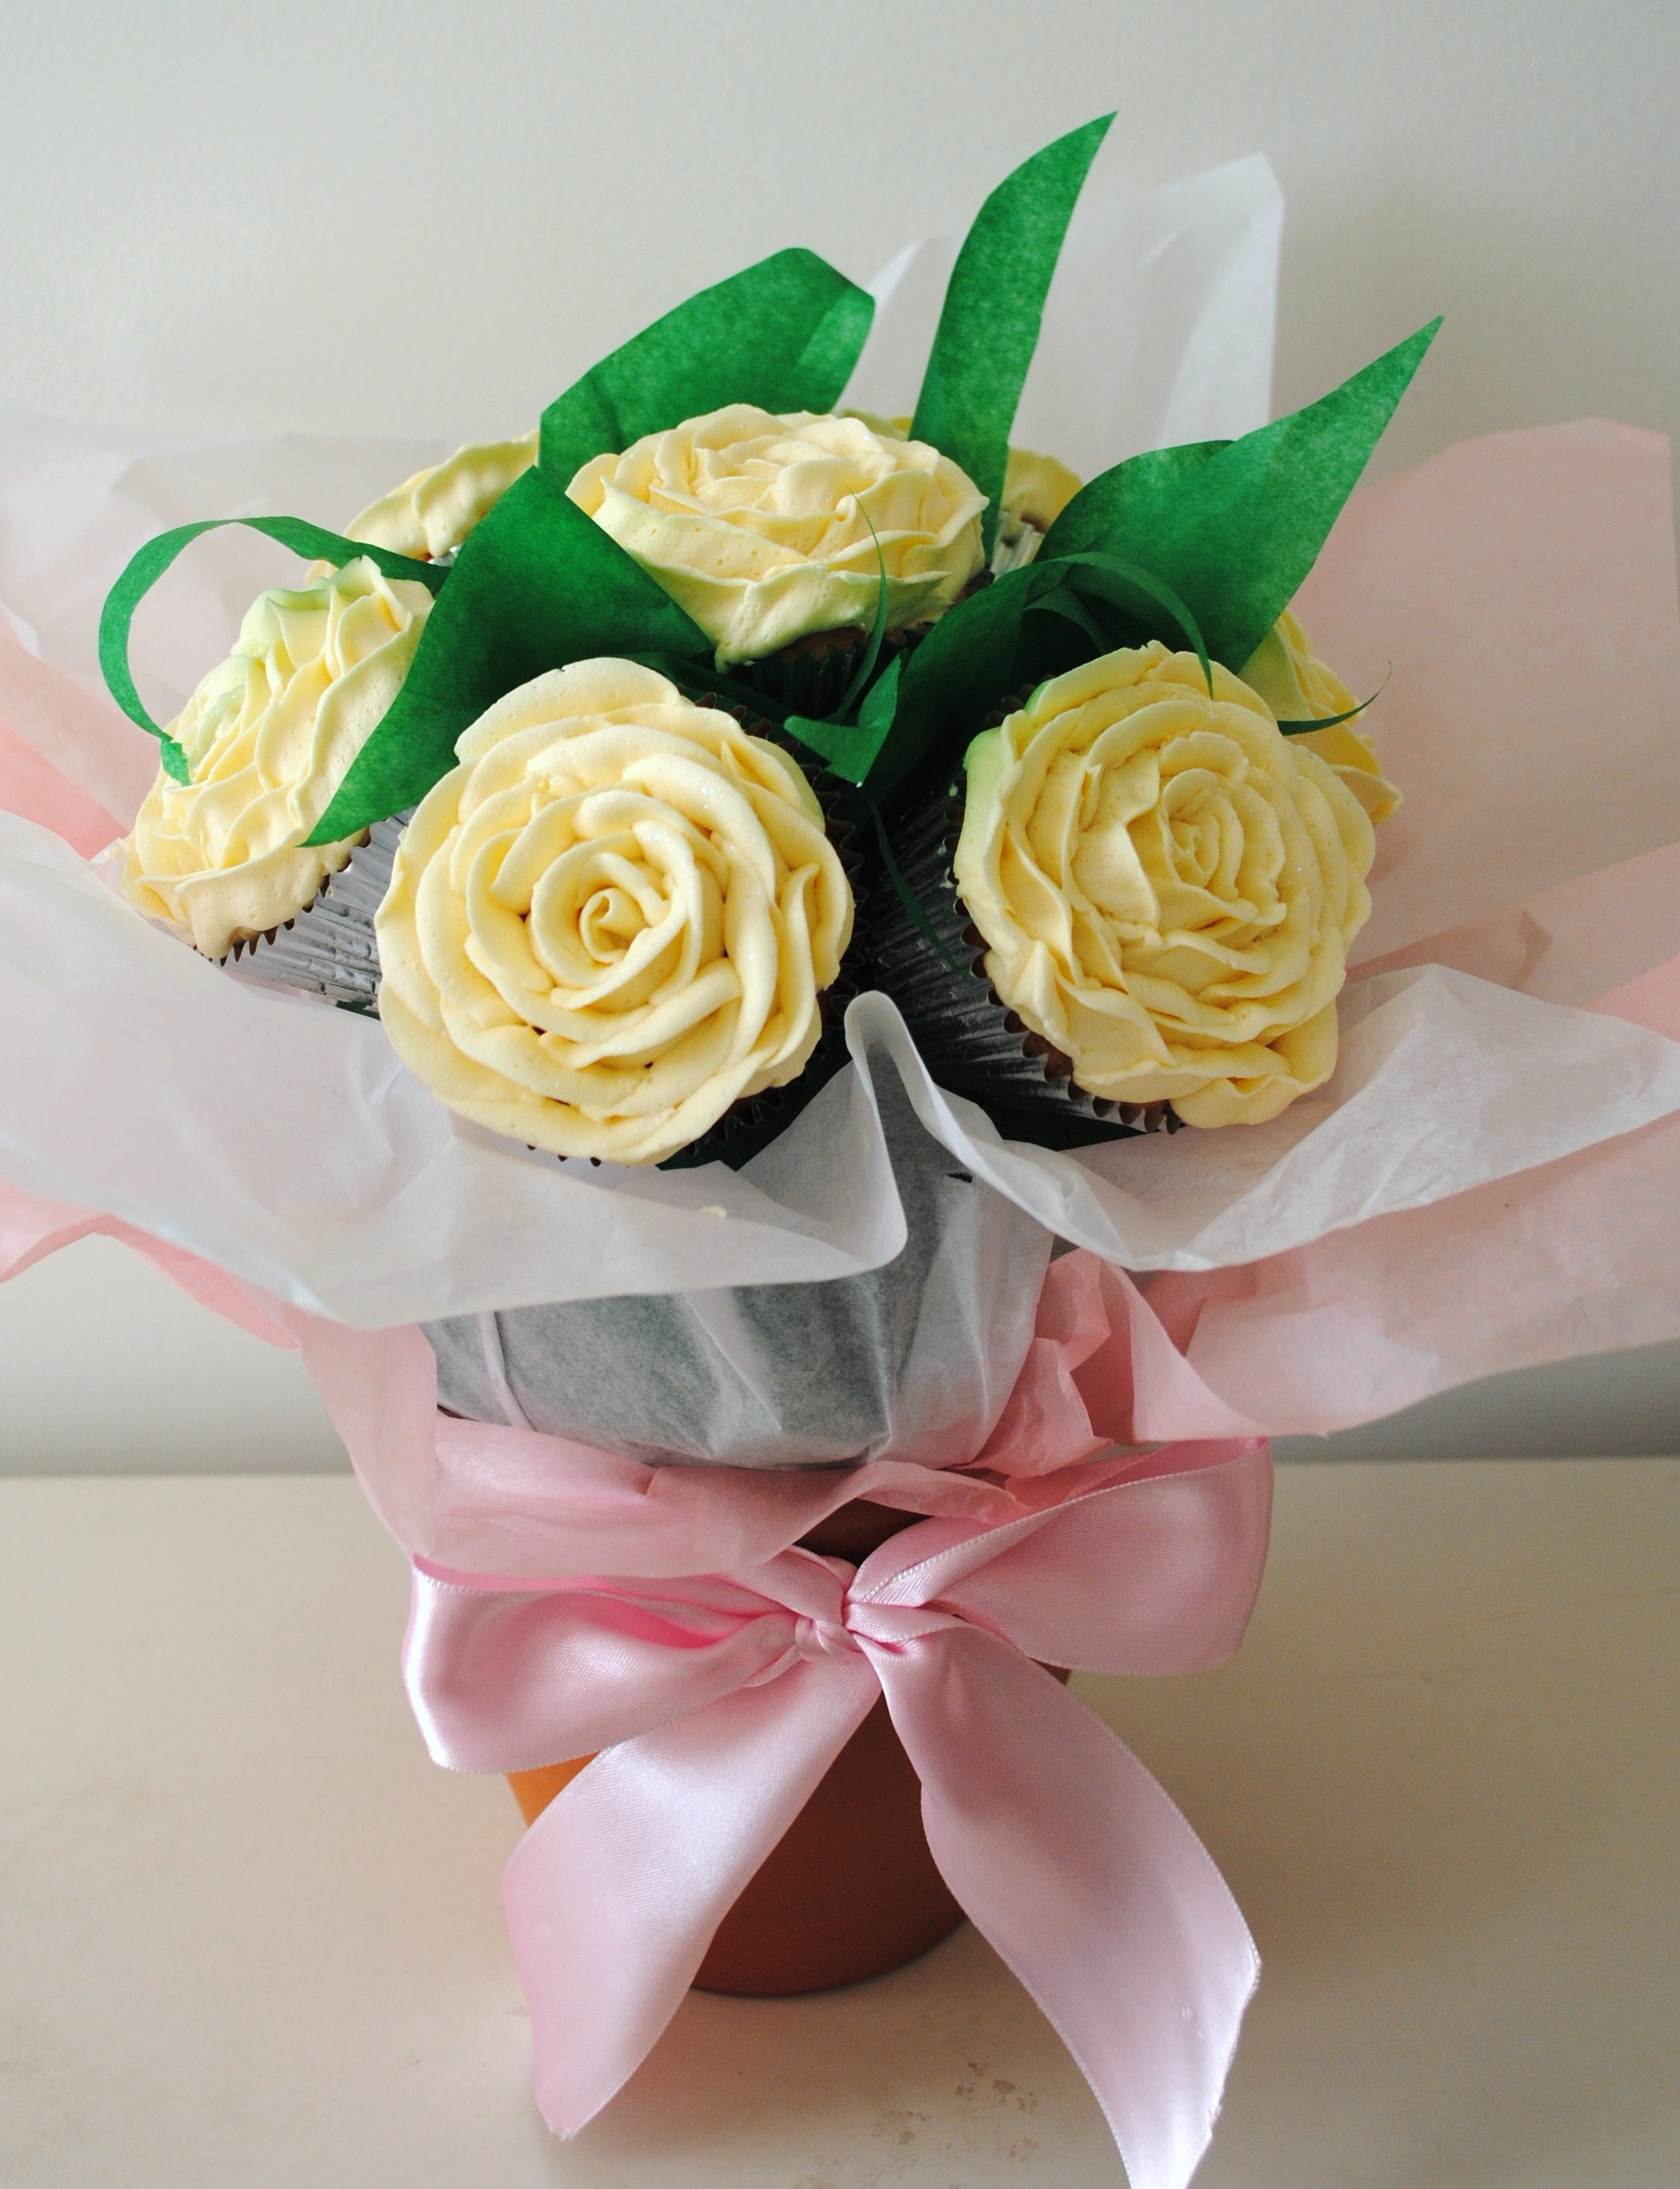 Miss cupcakes blog archive white rose flower cupcake bouquet white rose flower cupcake bouquet izmirmasajfo